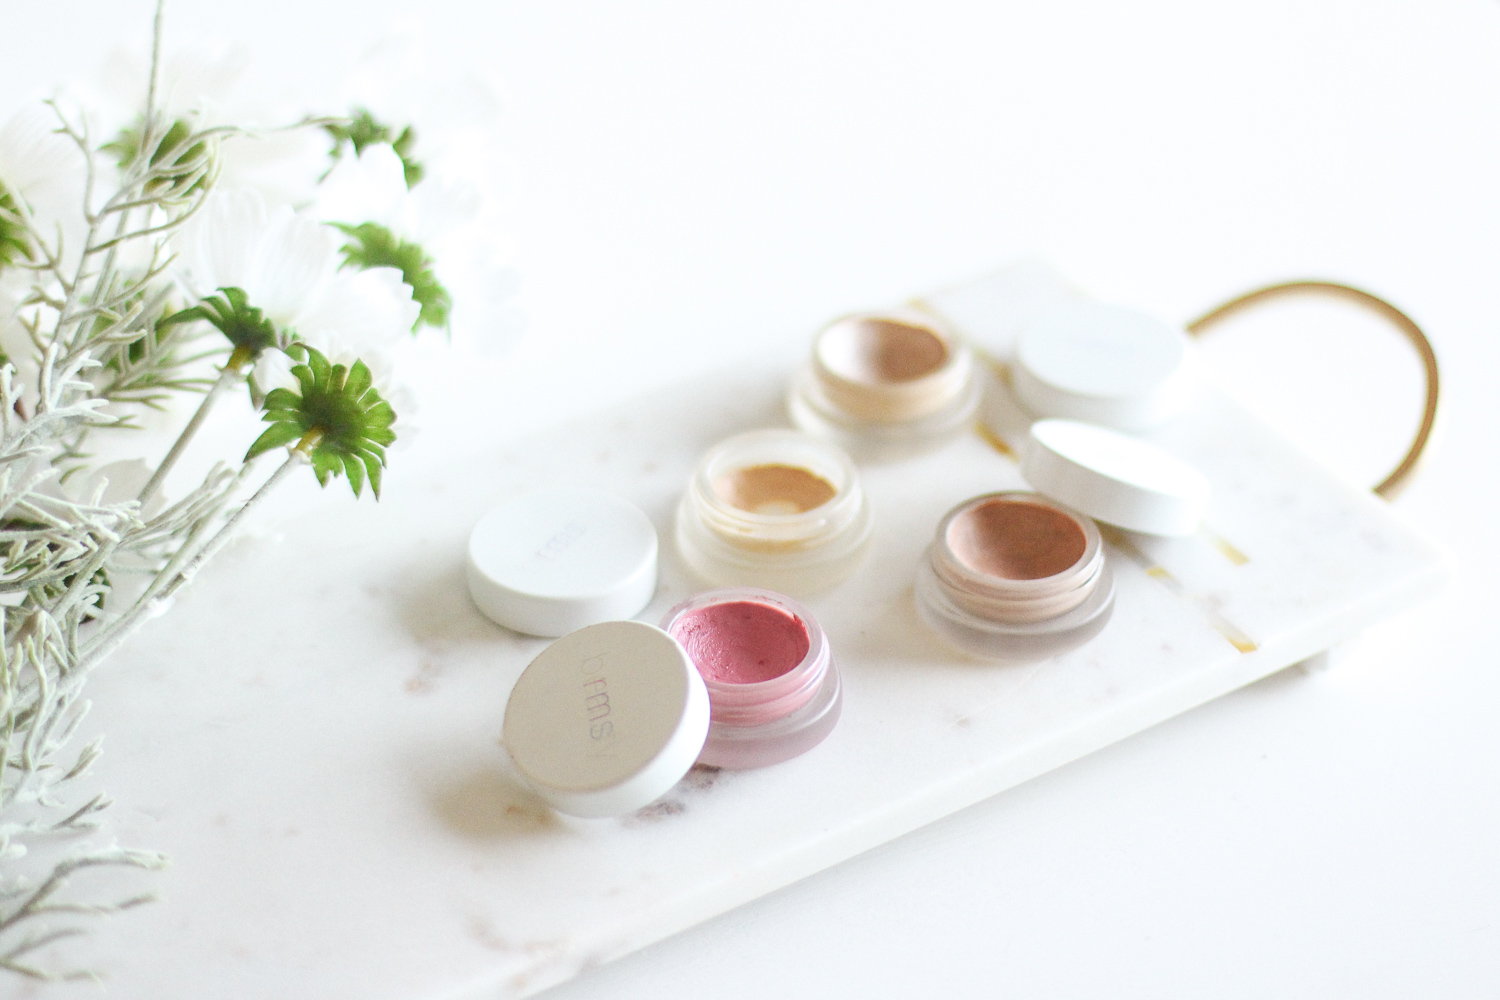 RMS Beauty Pots 5.jpg